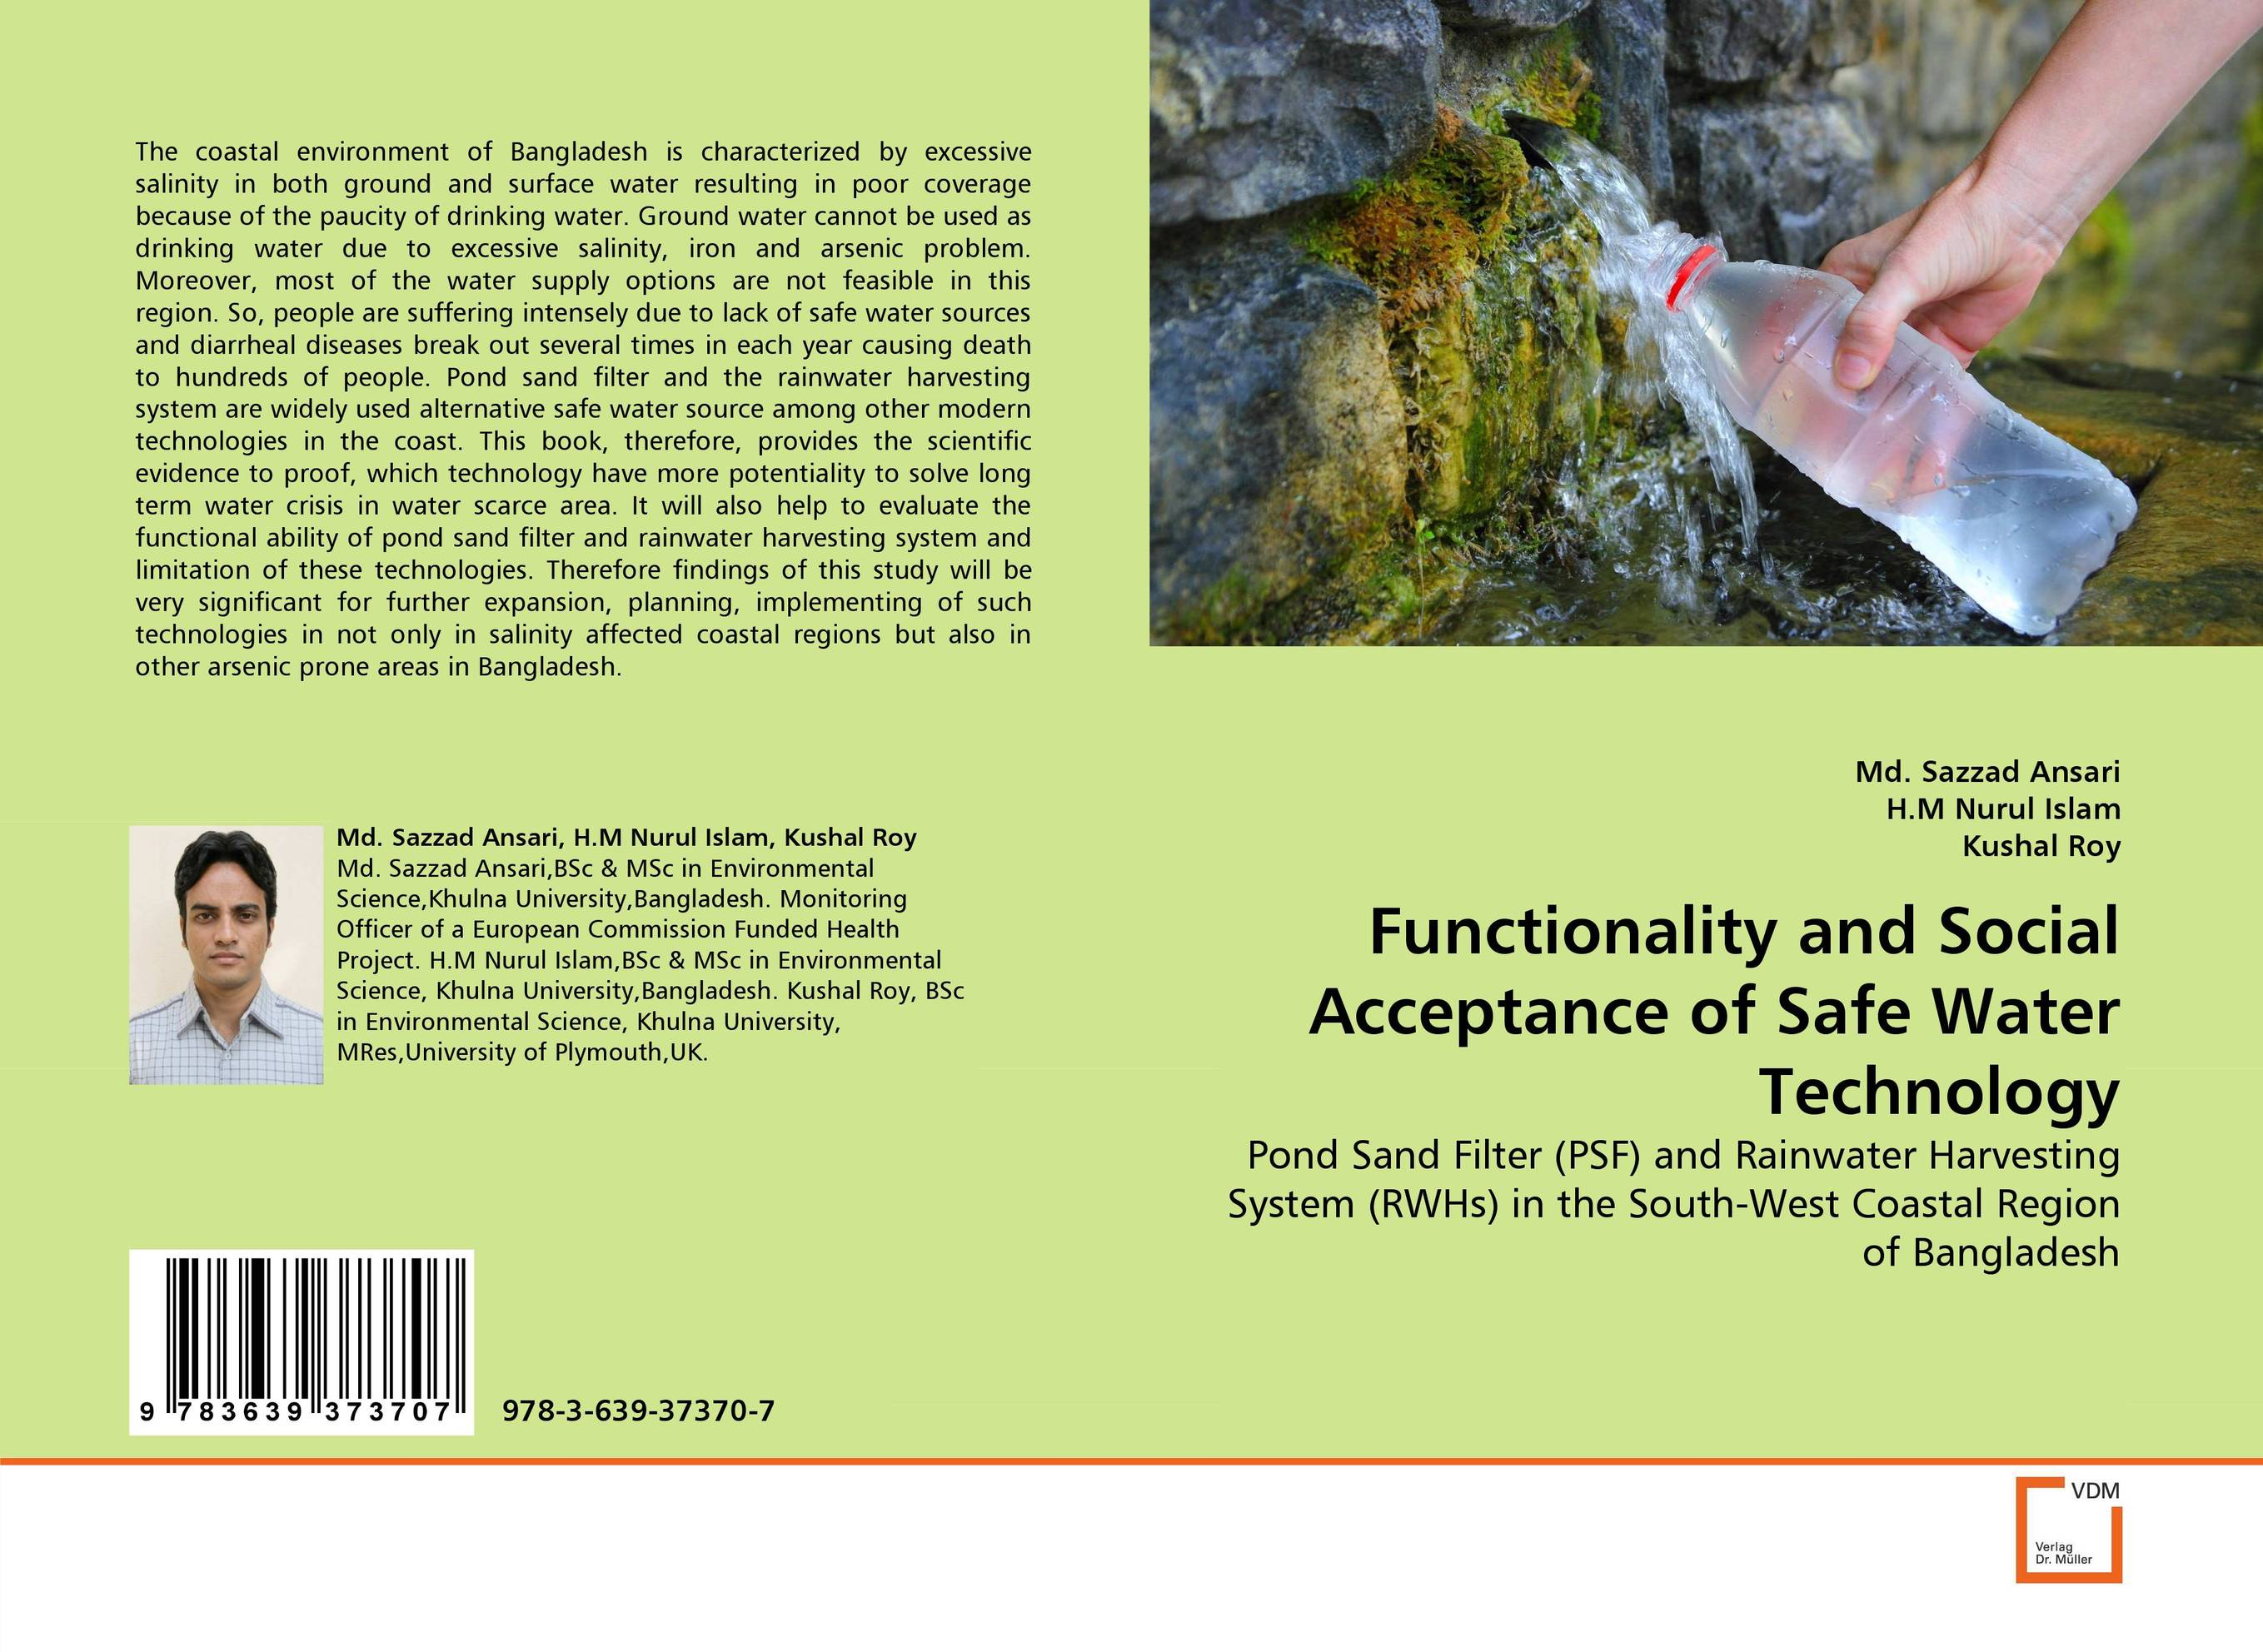 Functionality and Social Acceptance of Safe Water Technology bride of the water god v 3